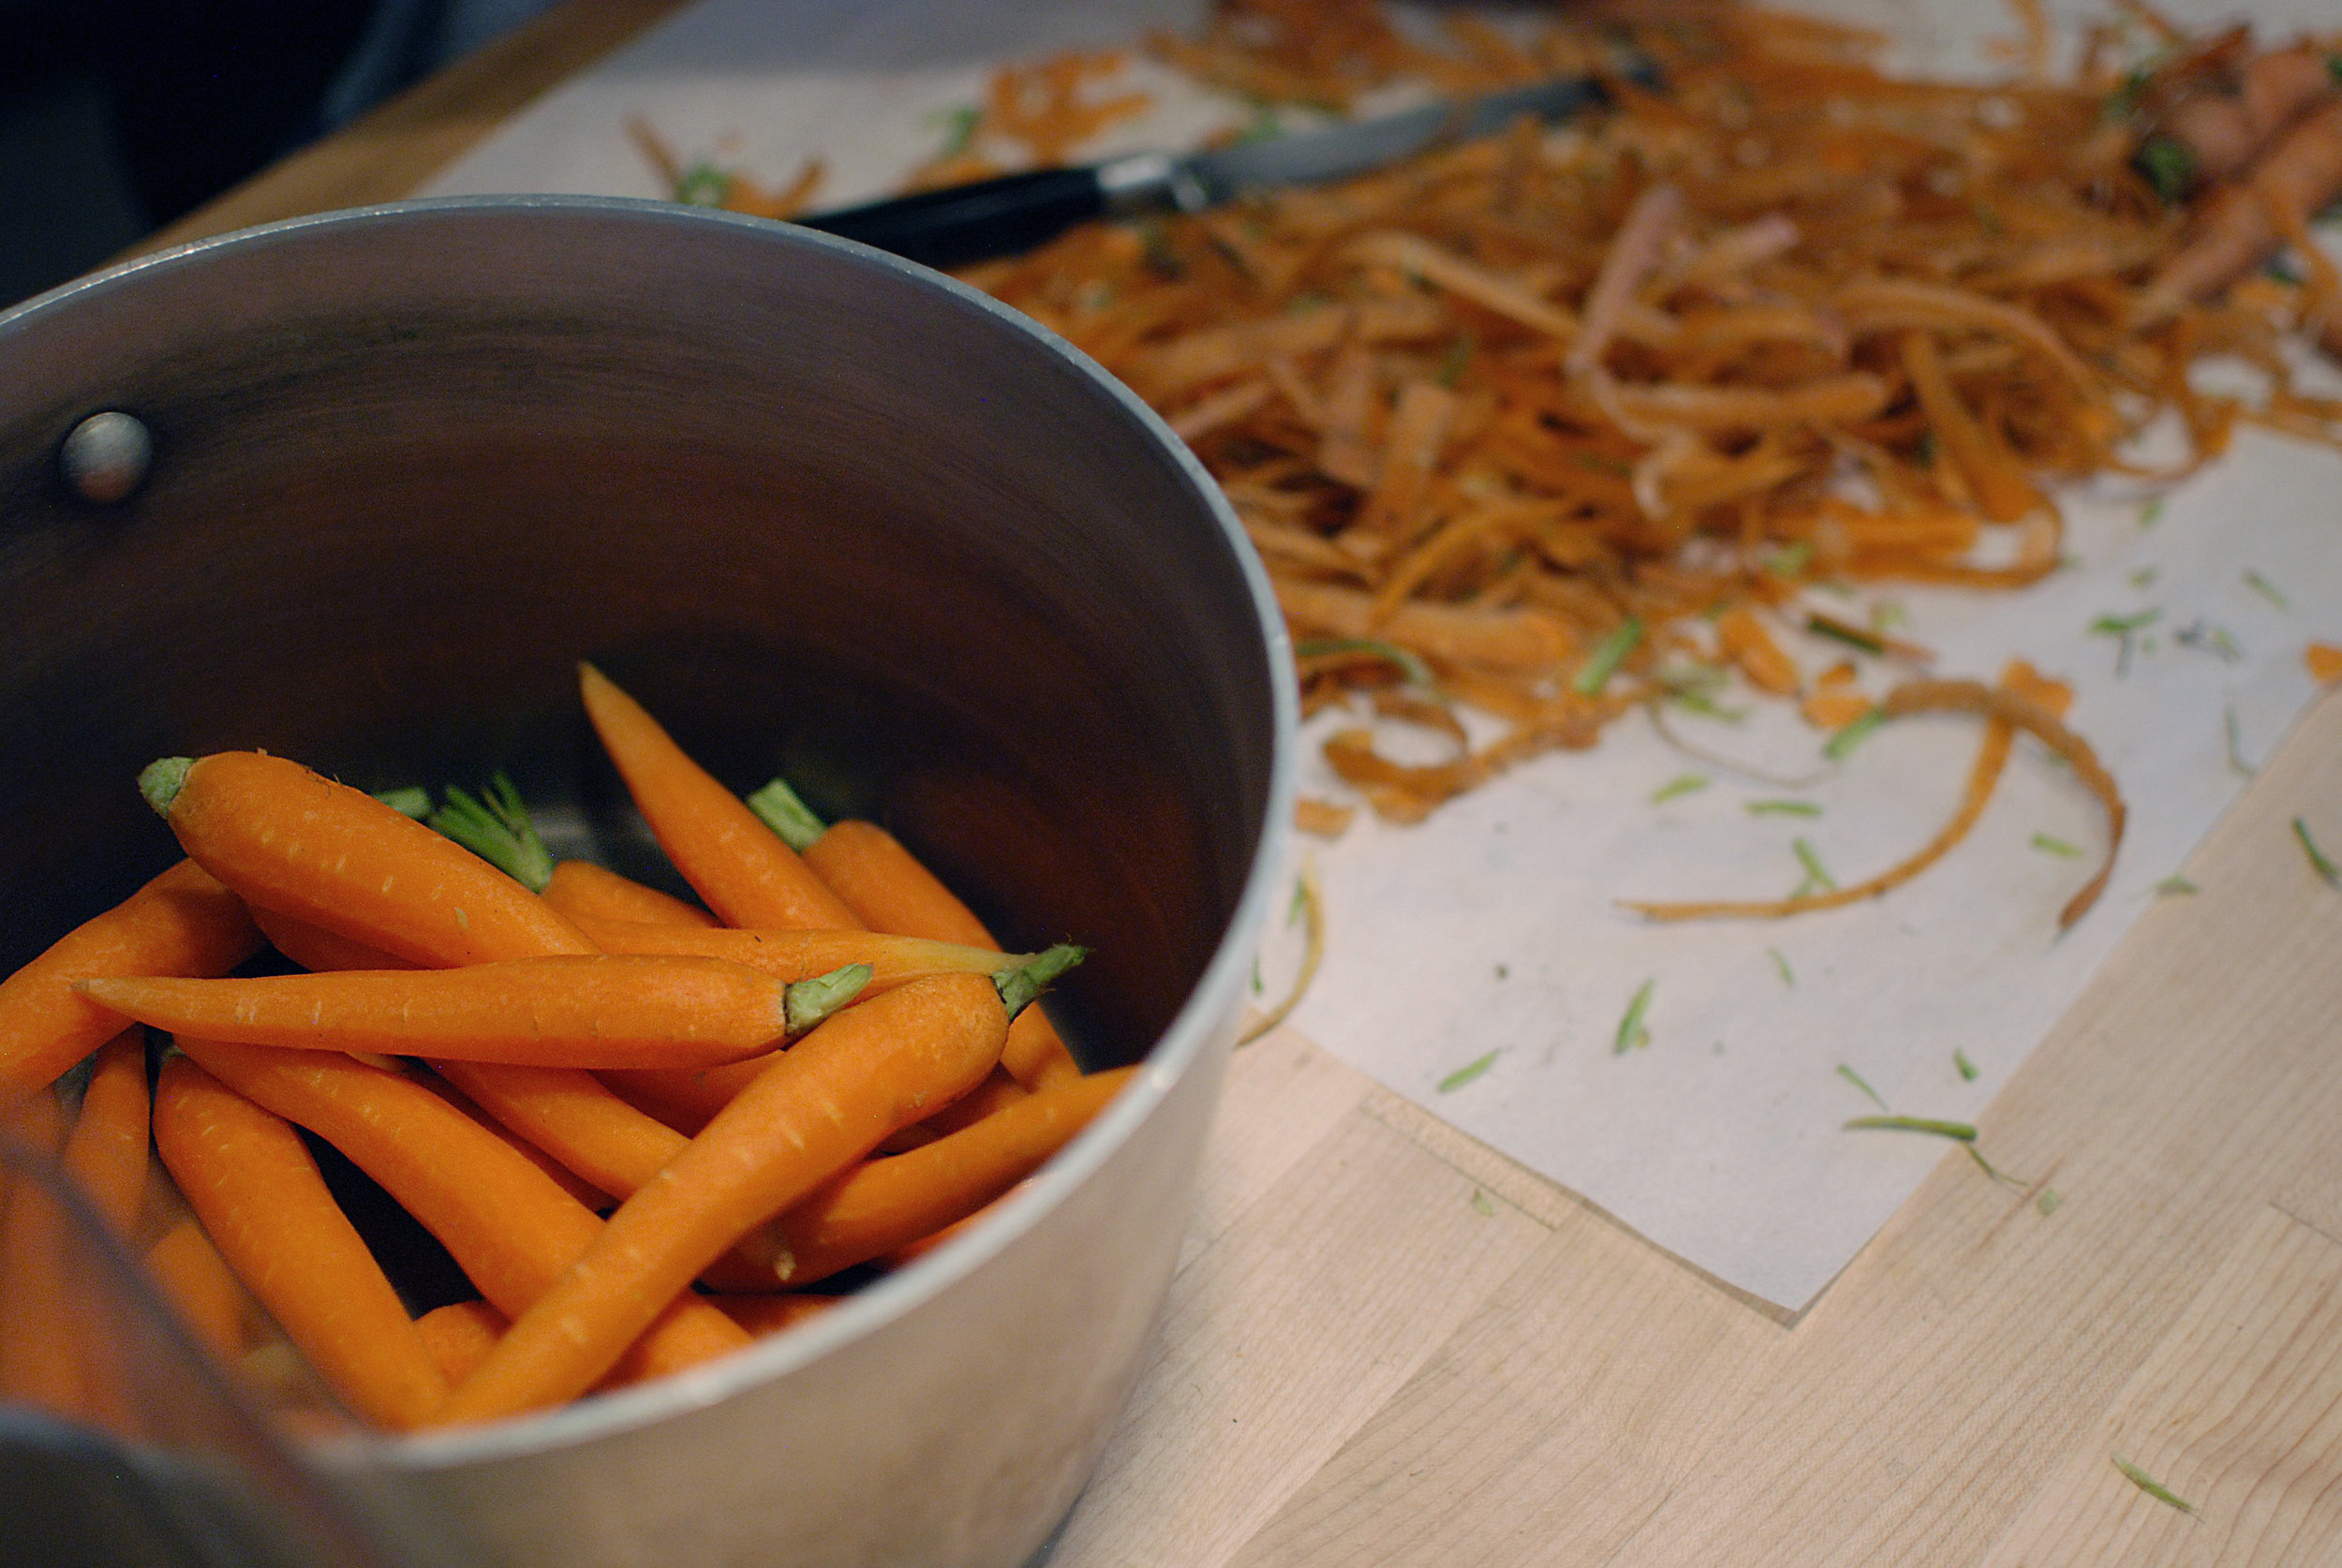 carrots in pot.jpg